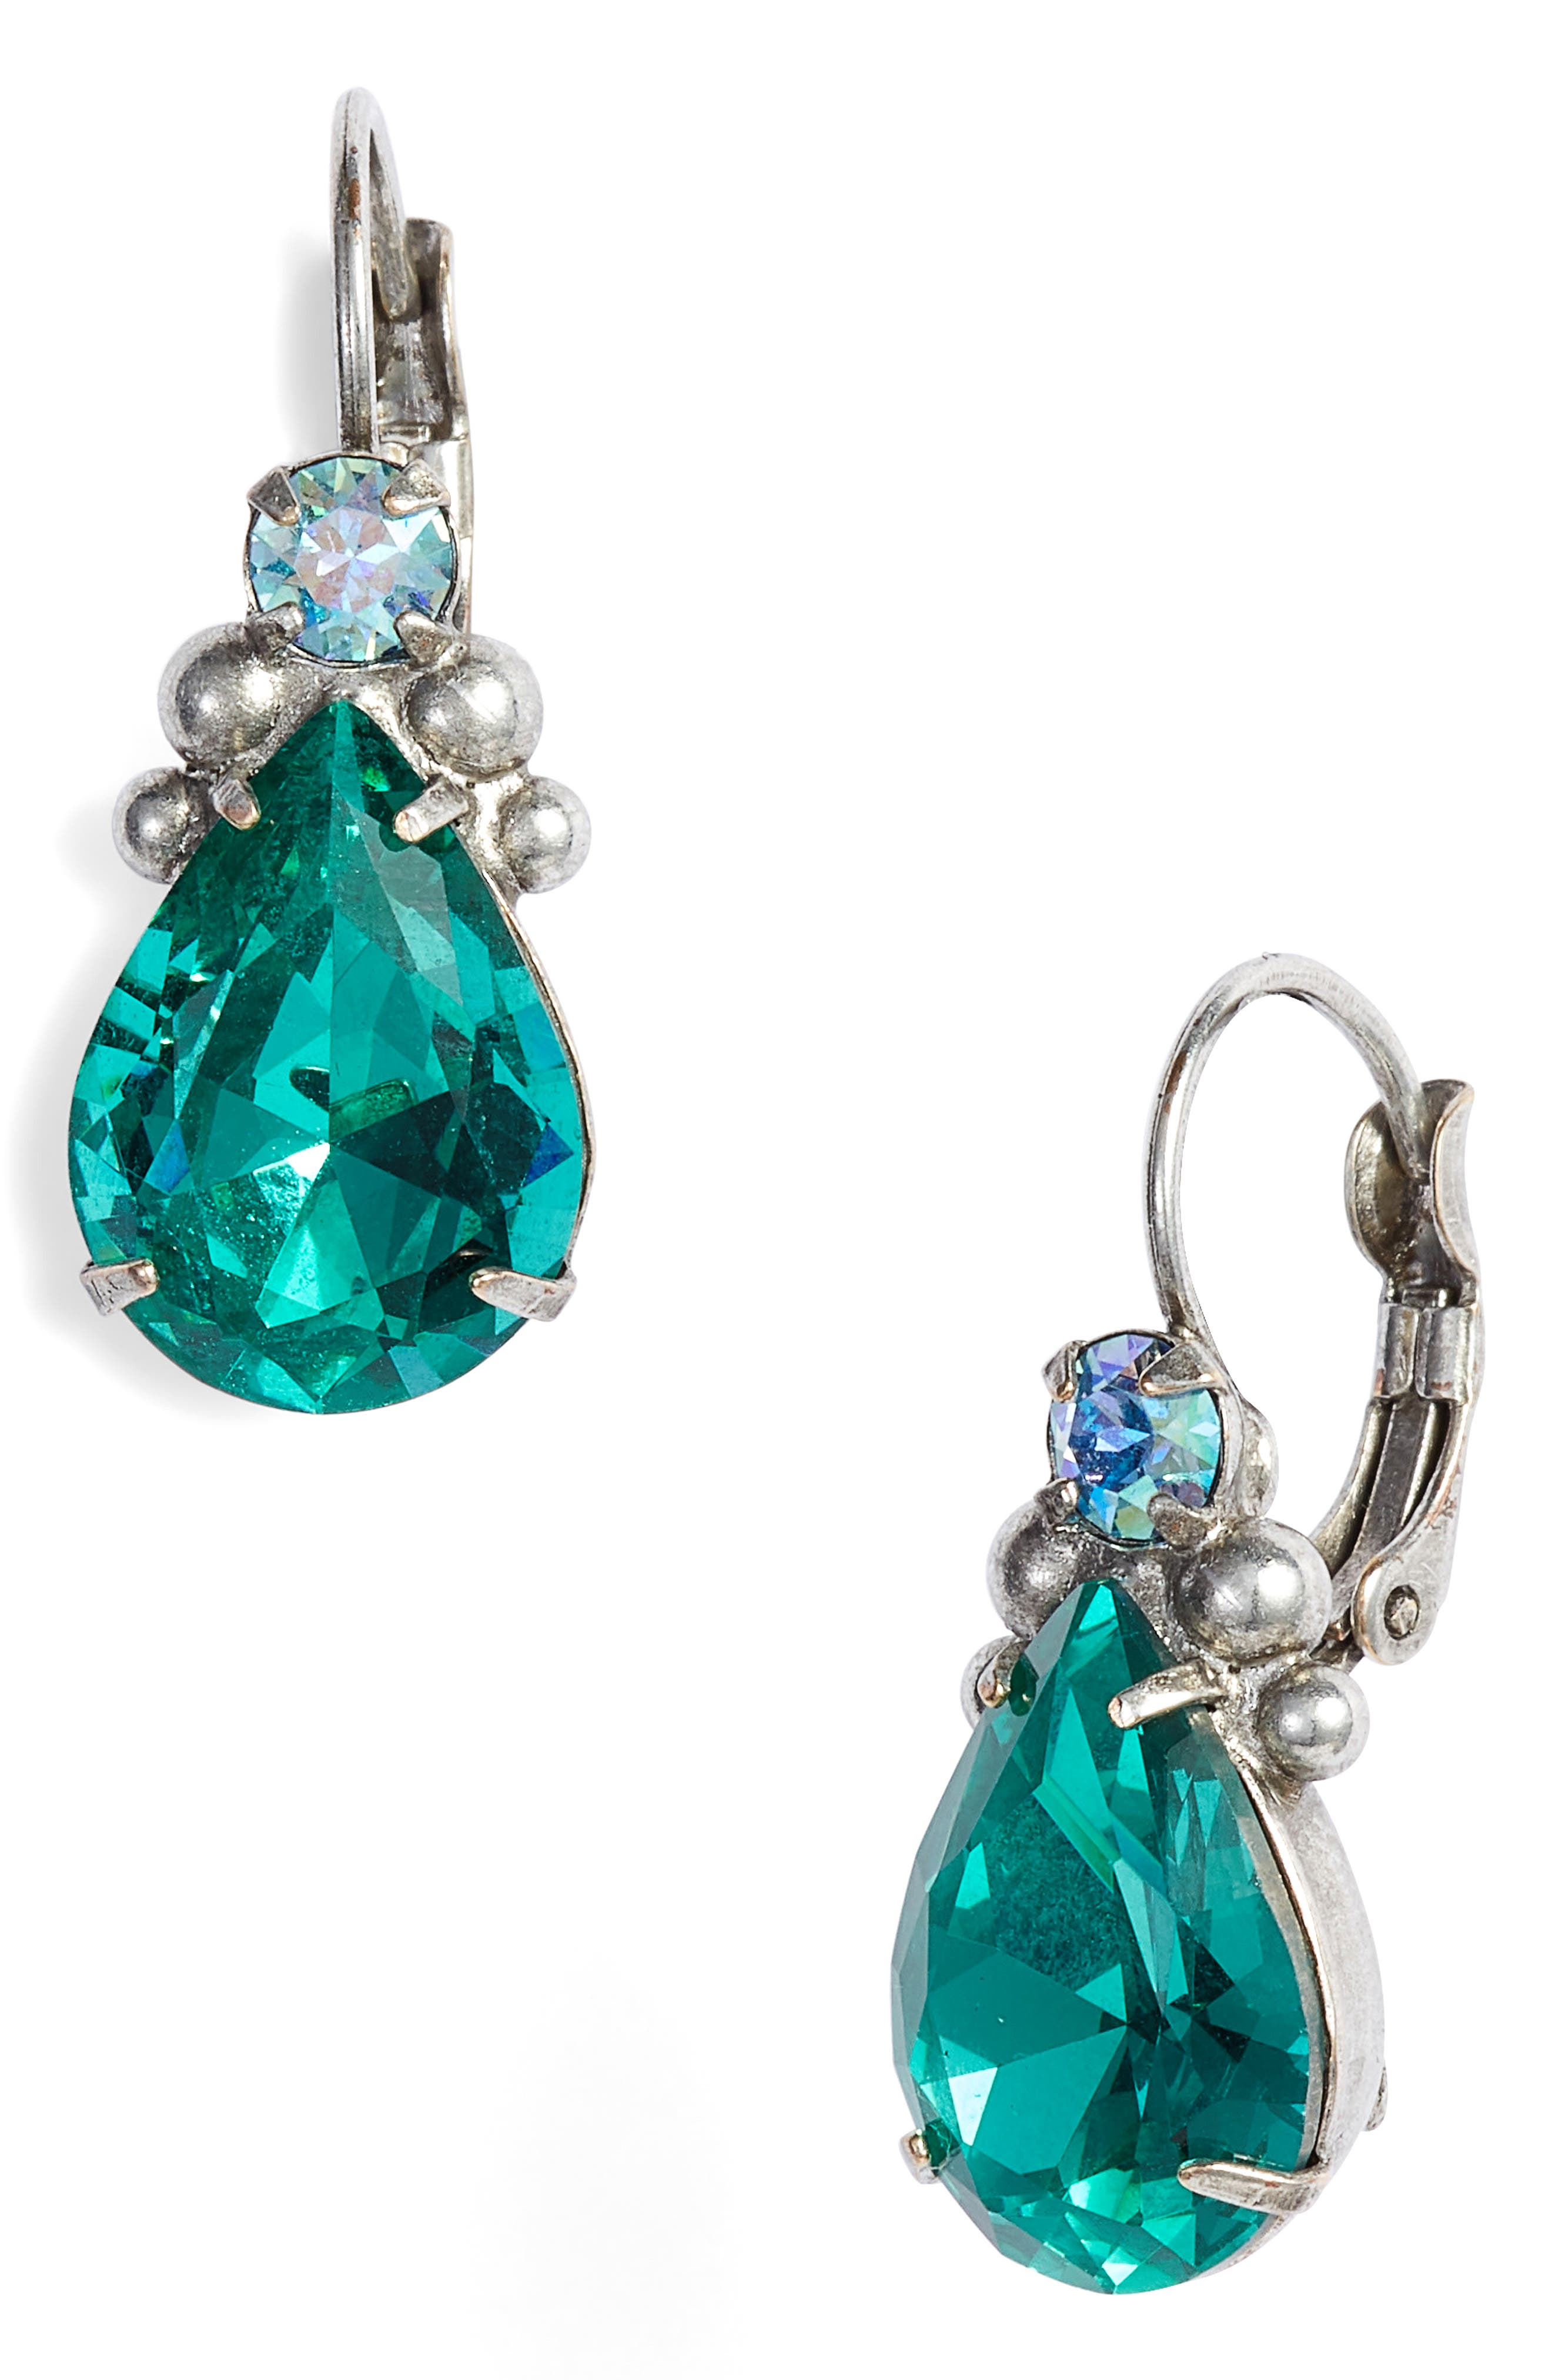 Embellished Pear Crystal Drop Earrings,                             Main thumbnail 1, color,                             Blue-Green